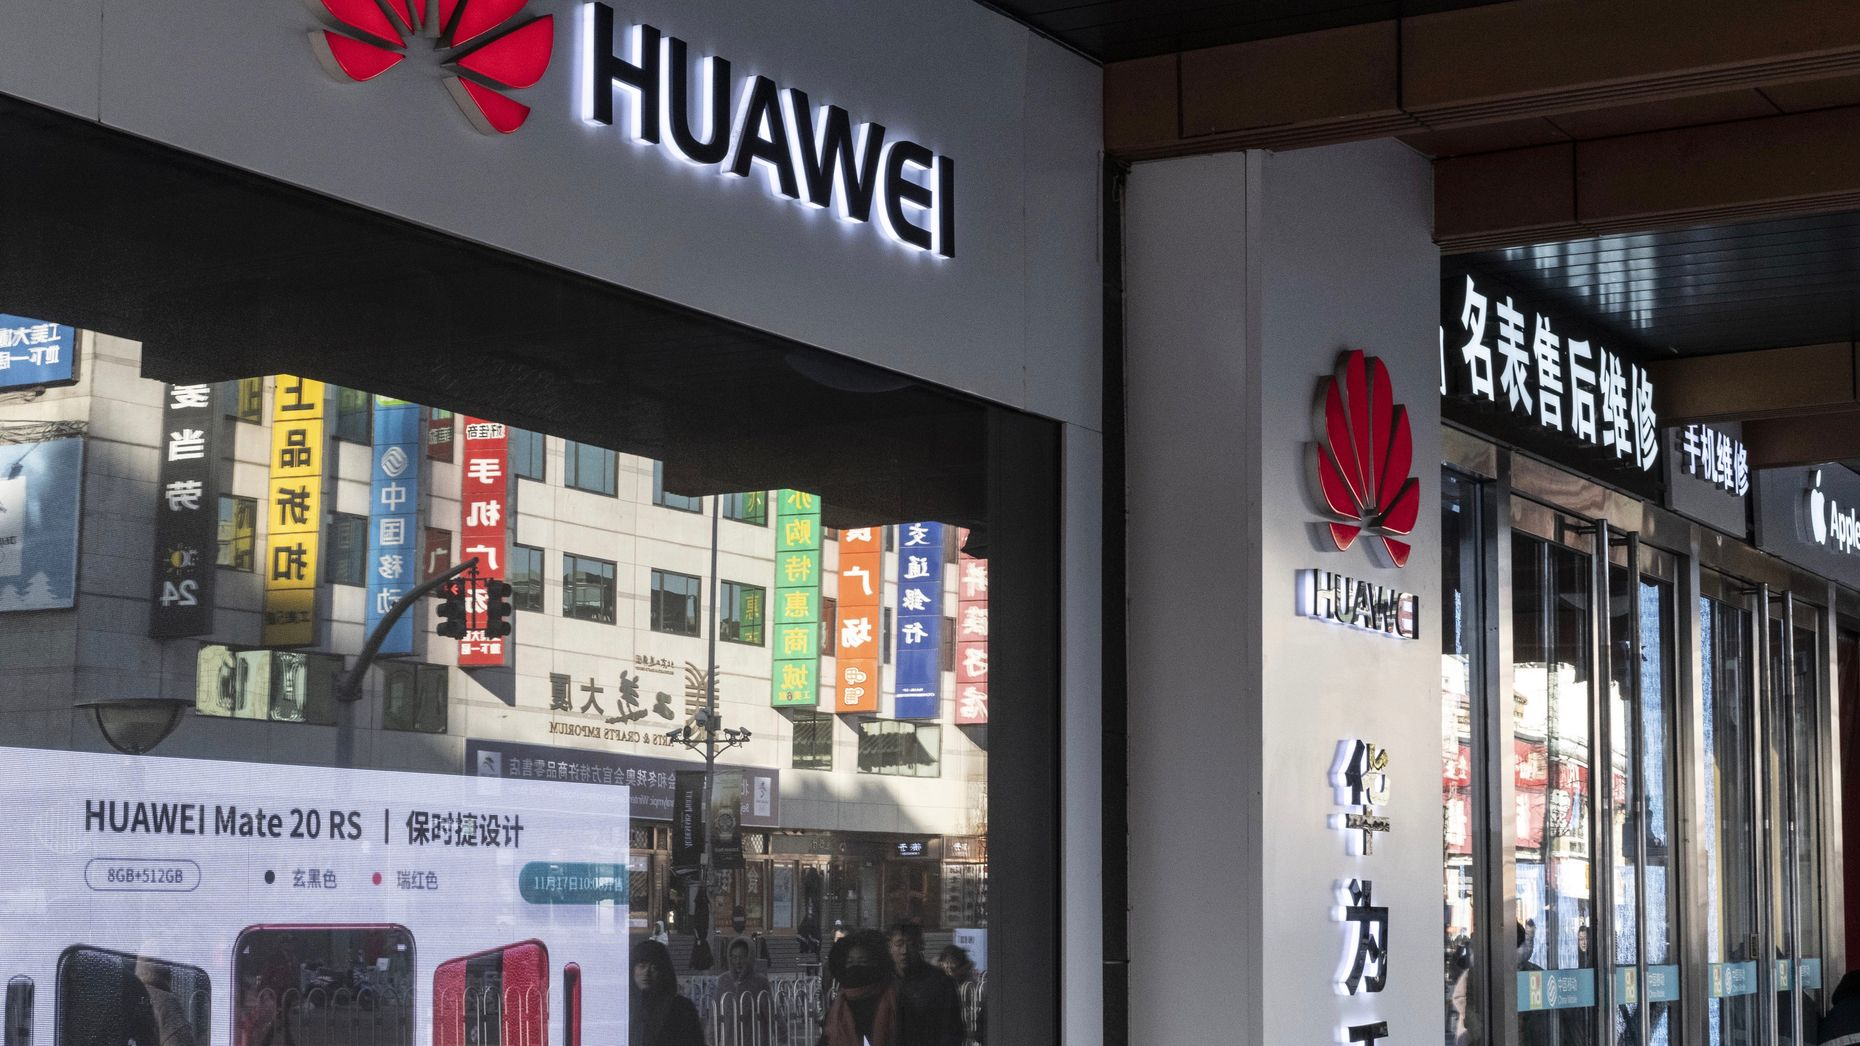 Huawei's Deep Ties to U.S. Researchers Face Backlash